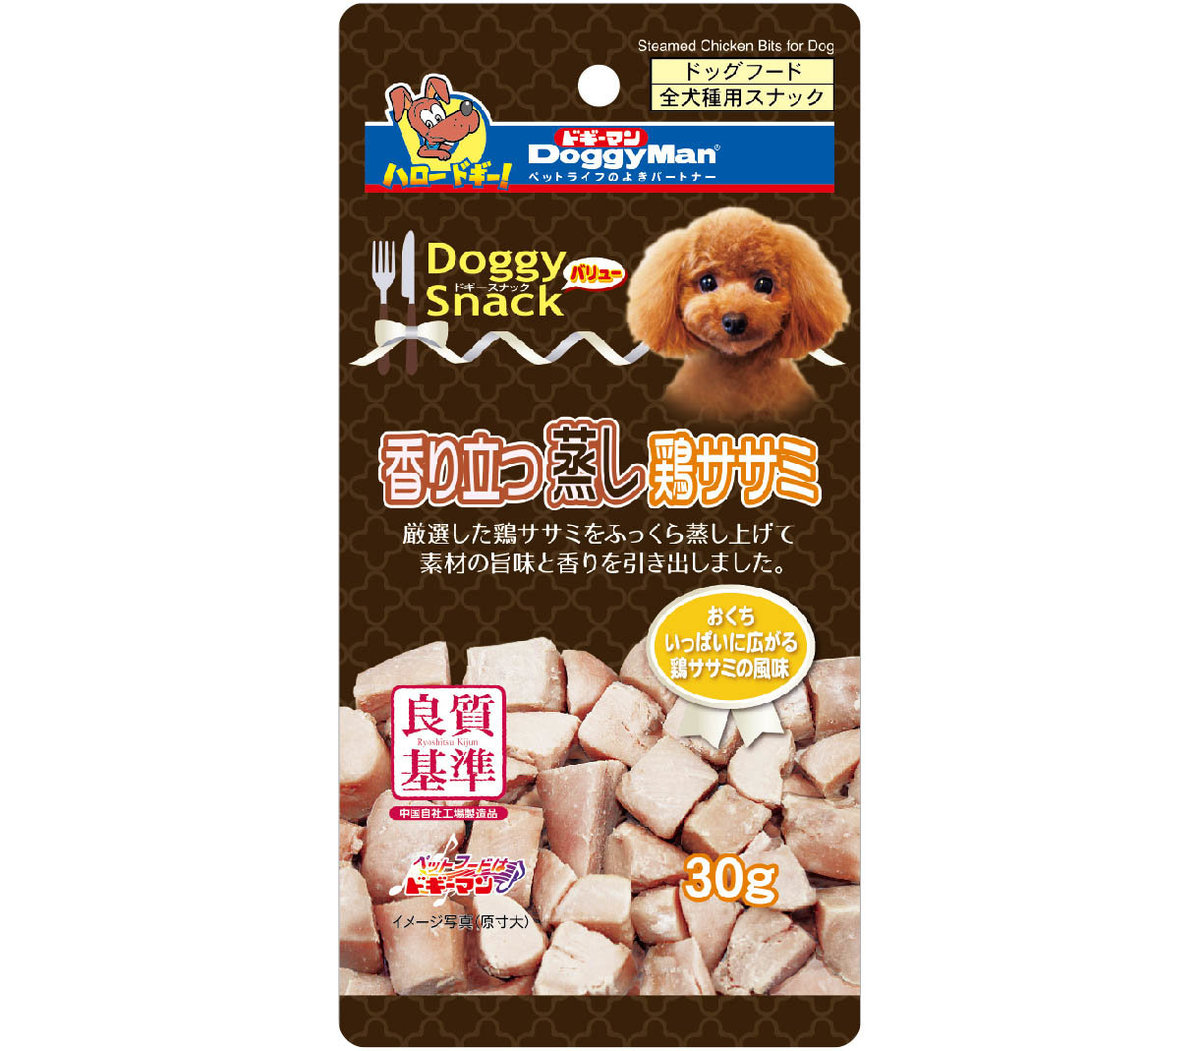 Steamed Chicken Bits for Dog (30g) #82141 A3